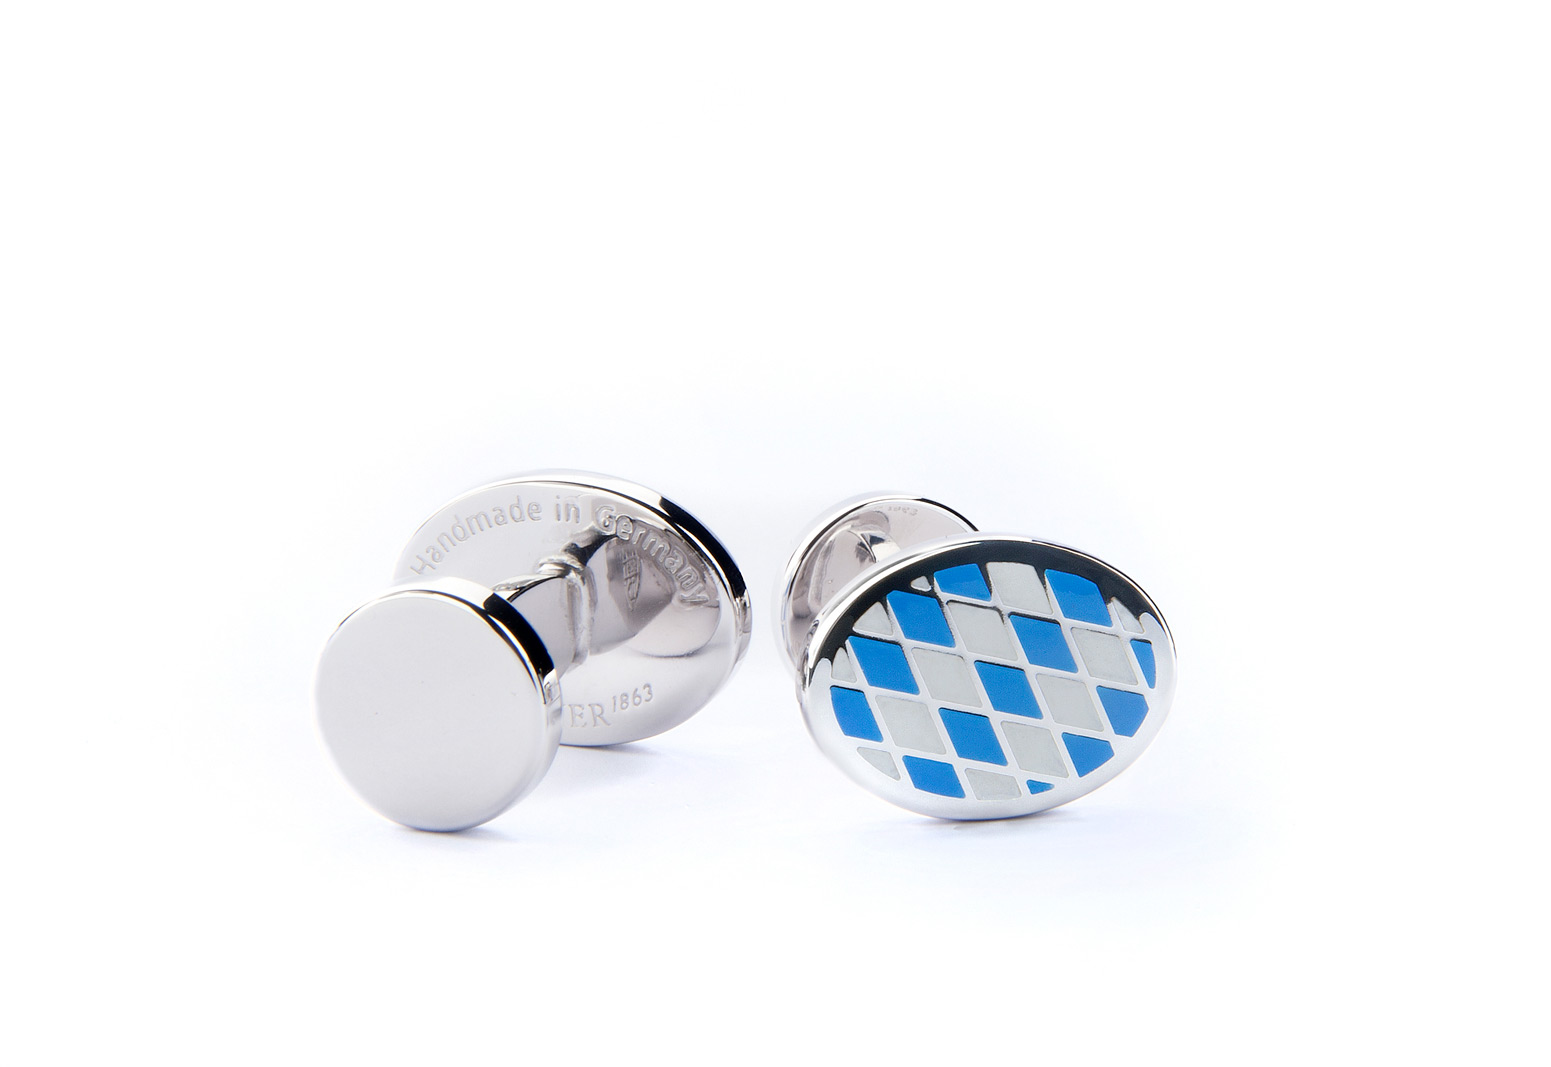 deumer-sinanmuslu-fashion-cufflinks001